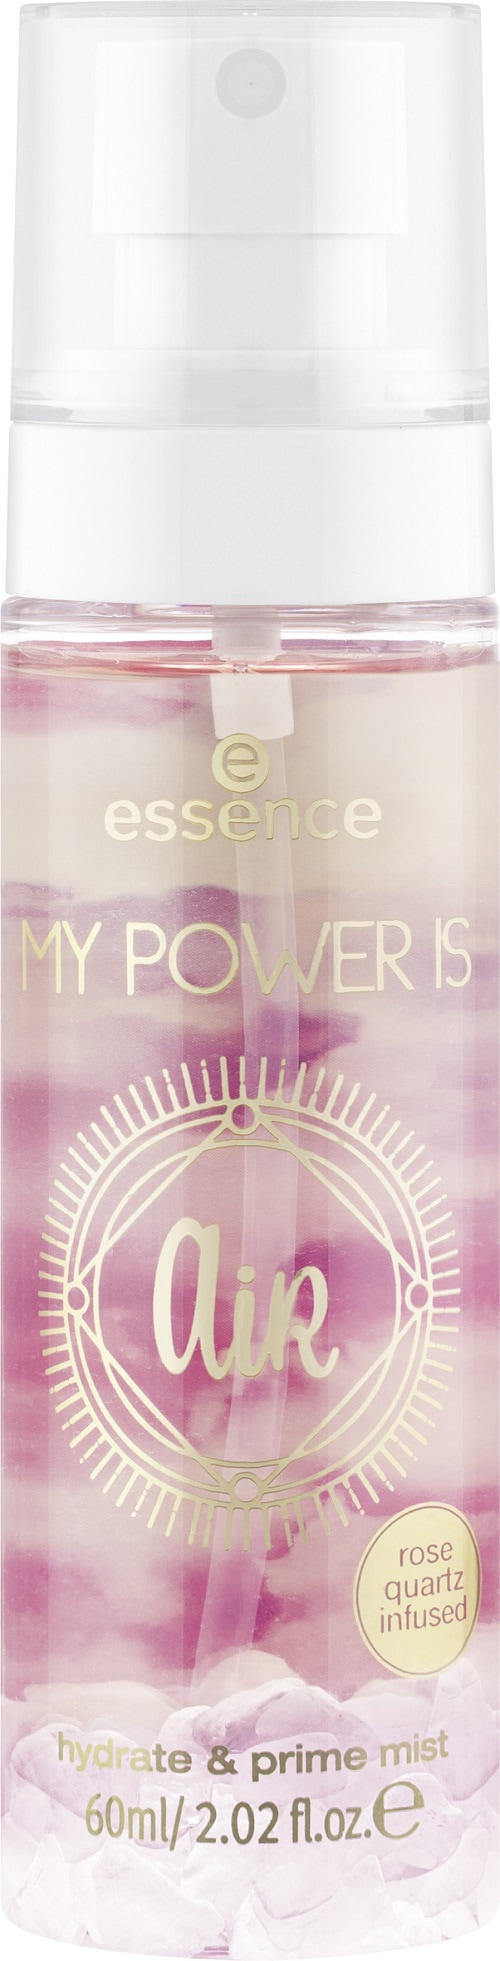 essence MY POWER IS aiR hydrate & prime mist 01